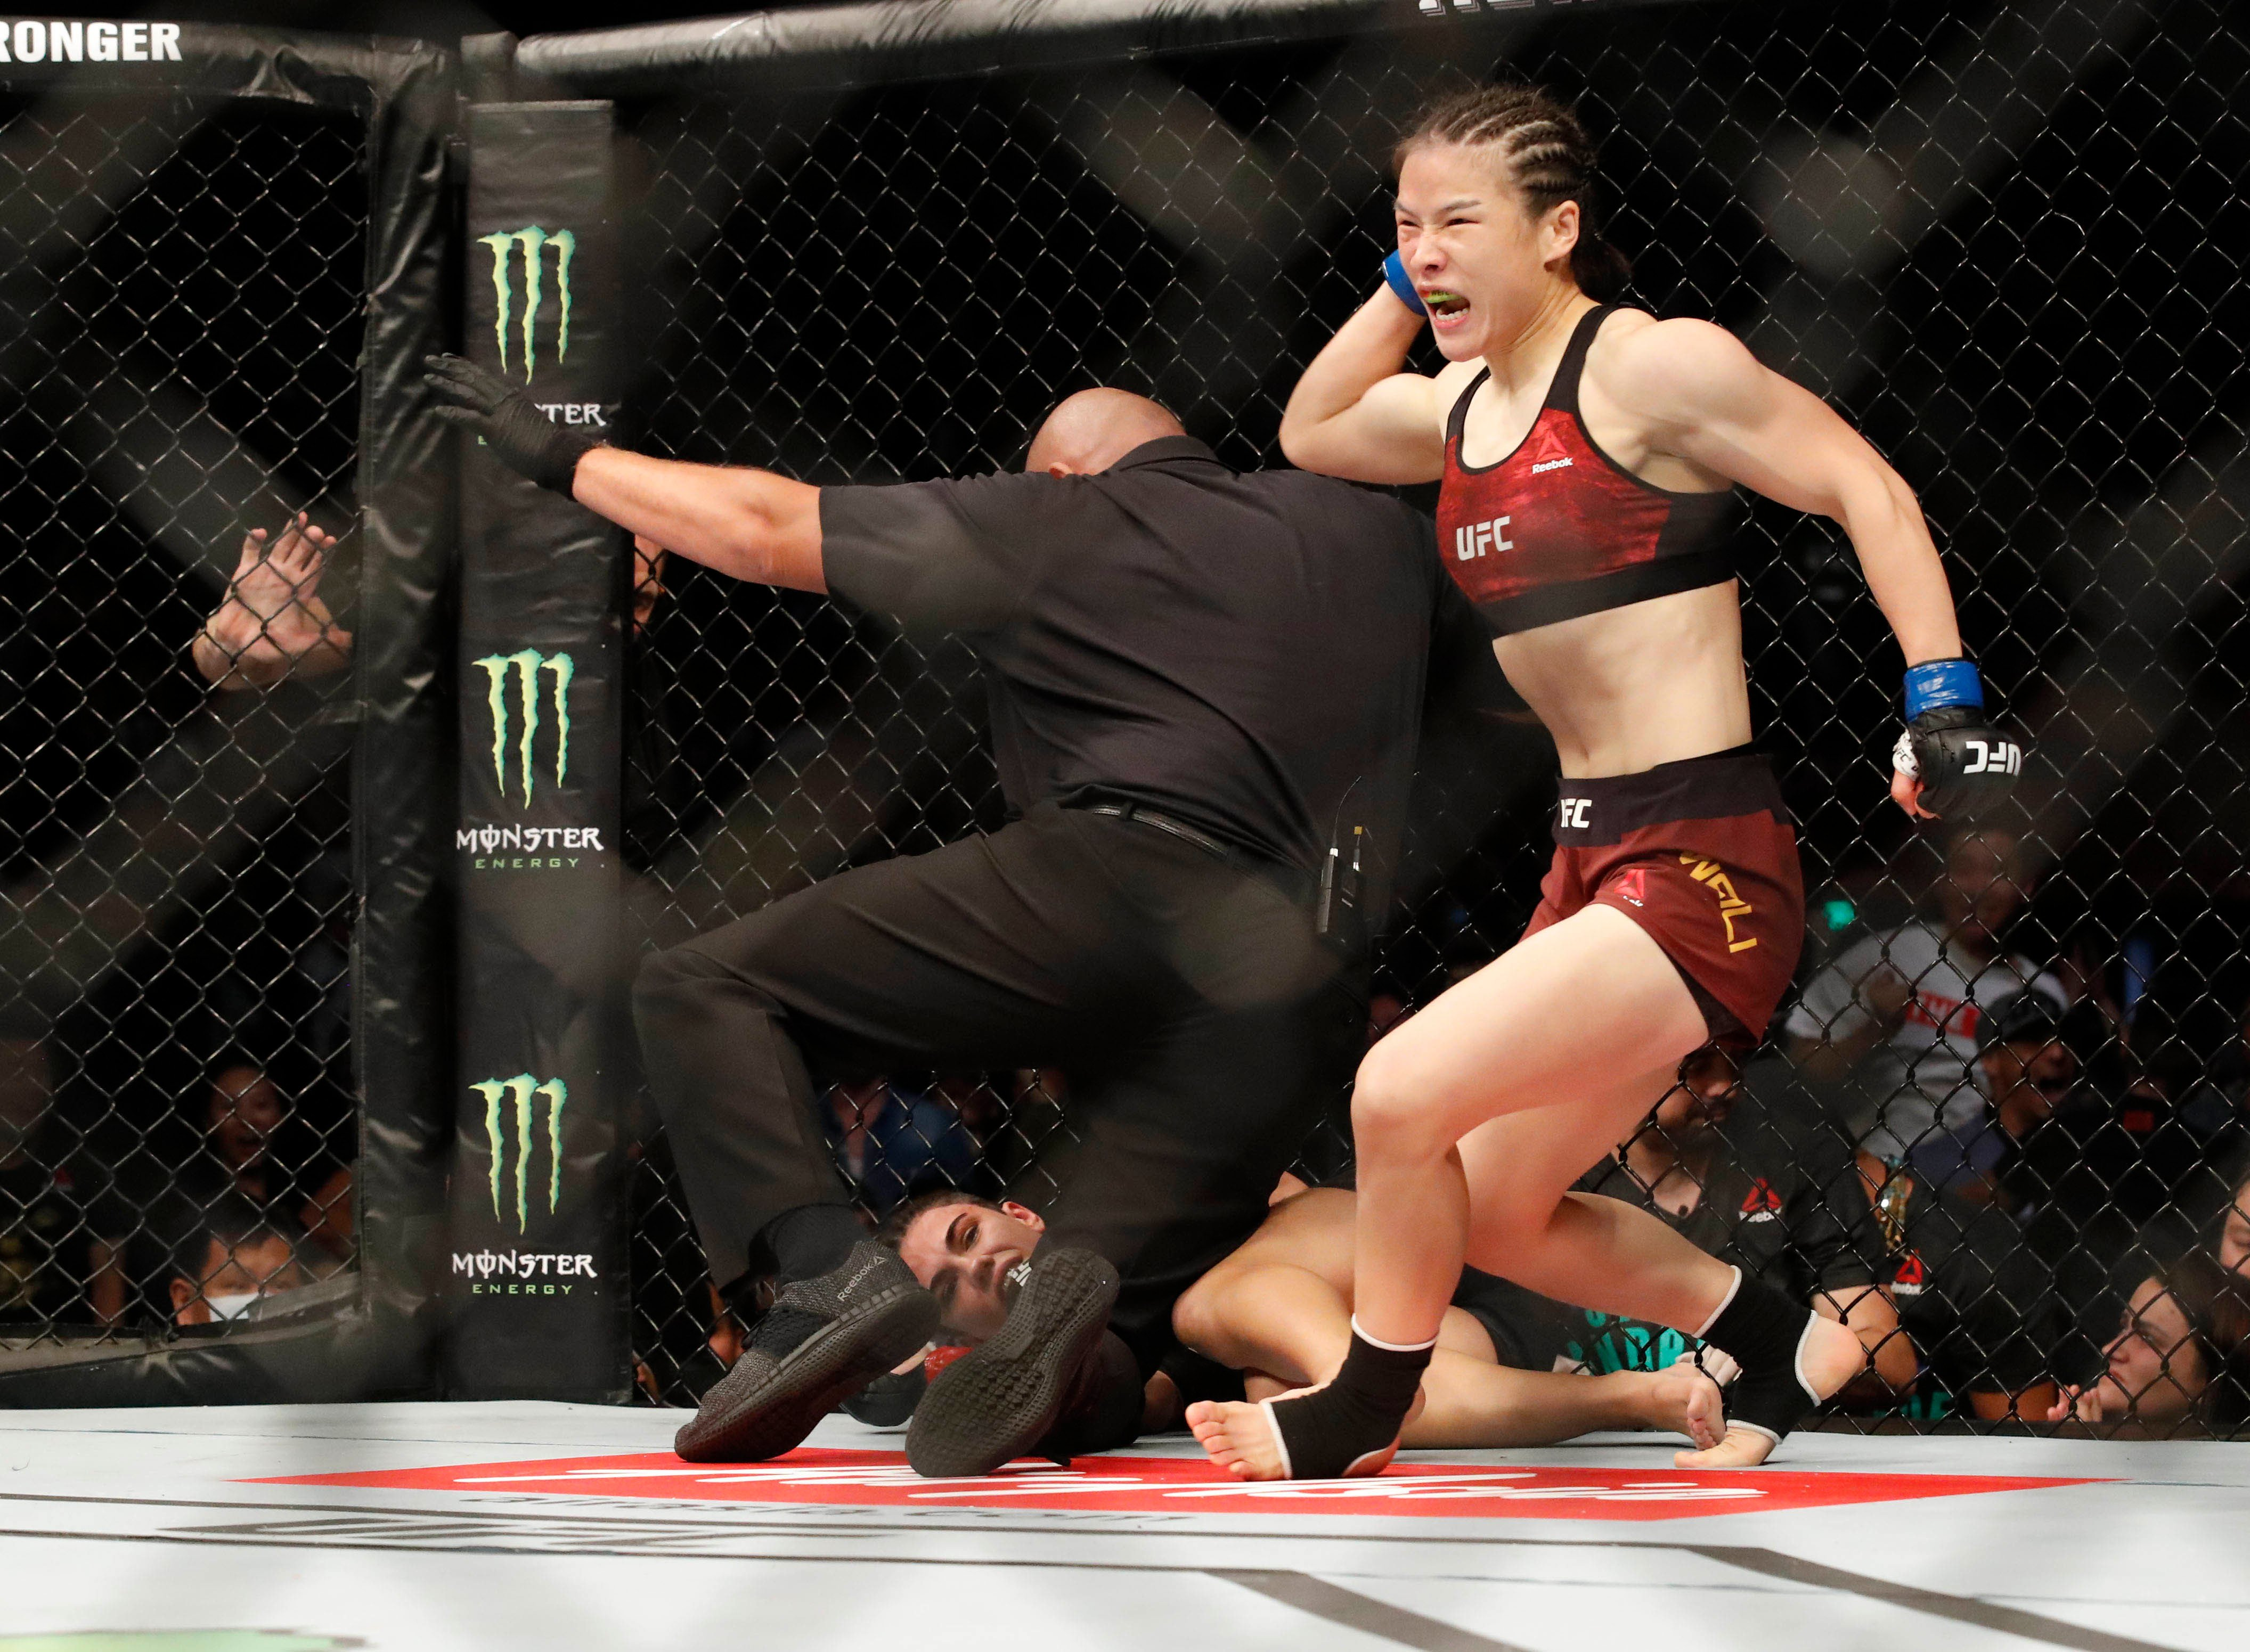 UFC's Zhang Weili hits out at Joanna Jedrzejczyk for Instagram meme about coronavirus